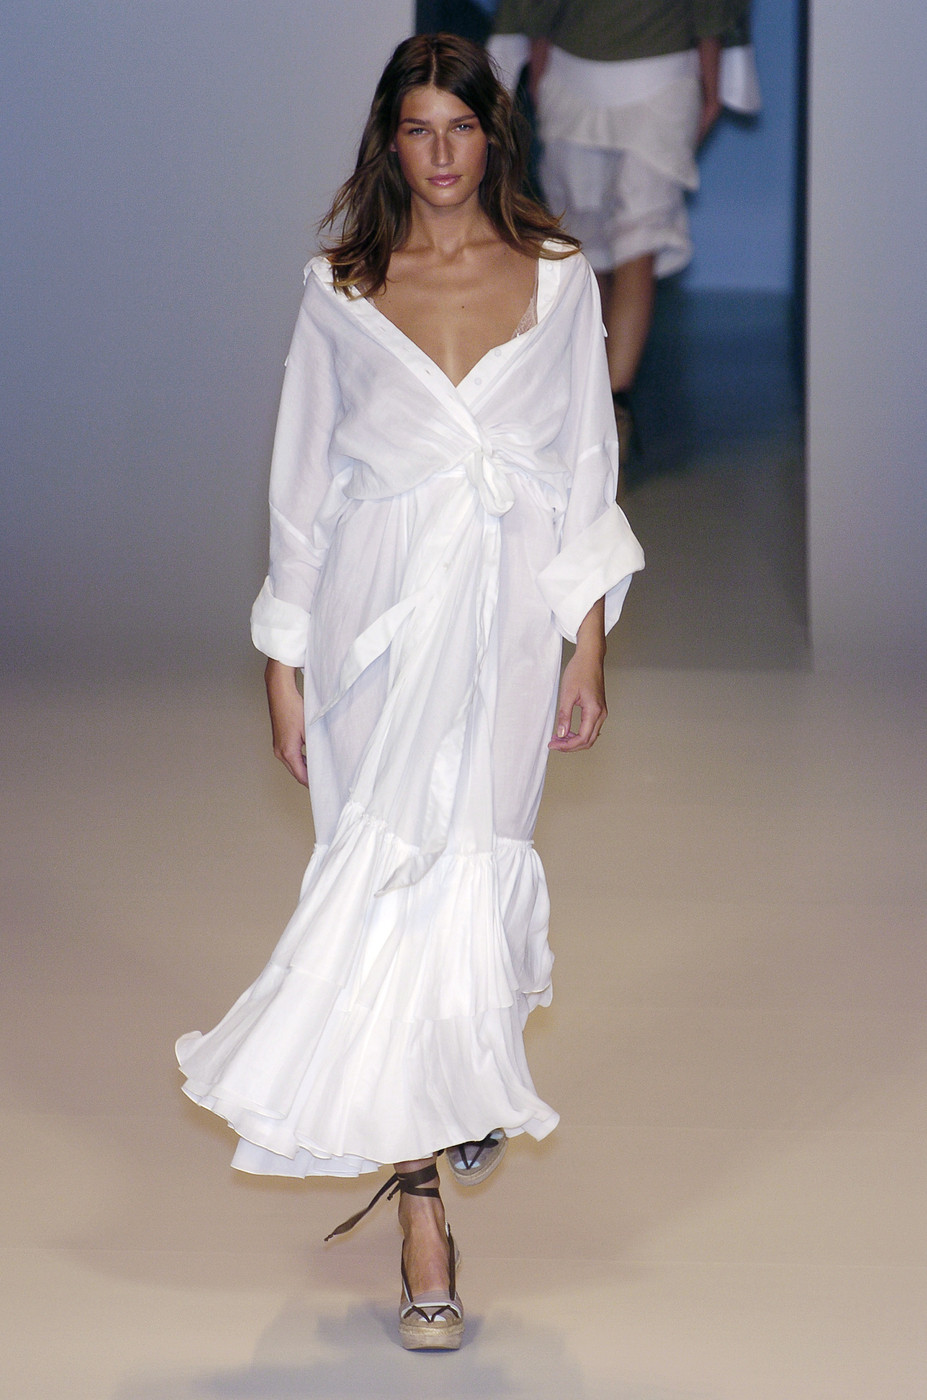 Stella McCartney Spring/Summer 2005 ready-to-wear collection